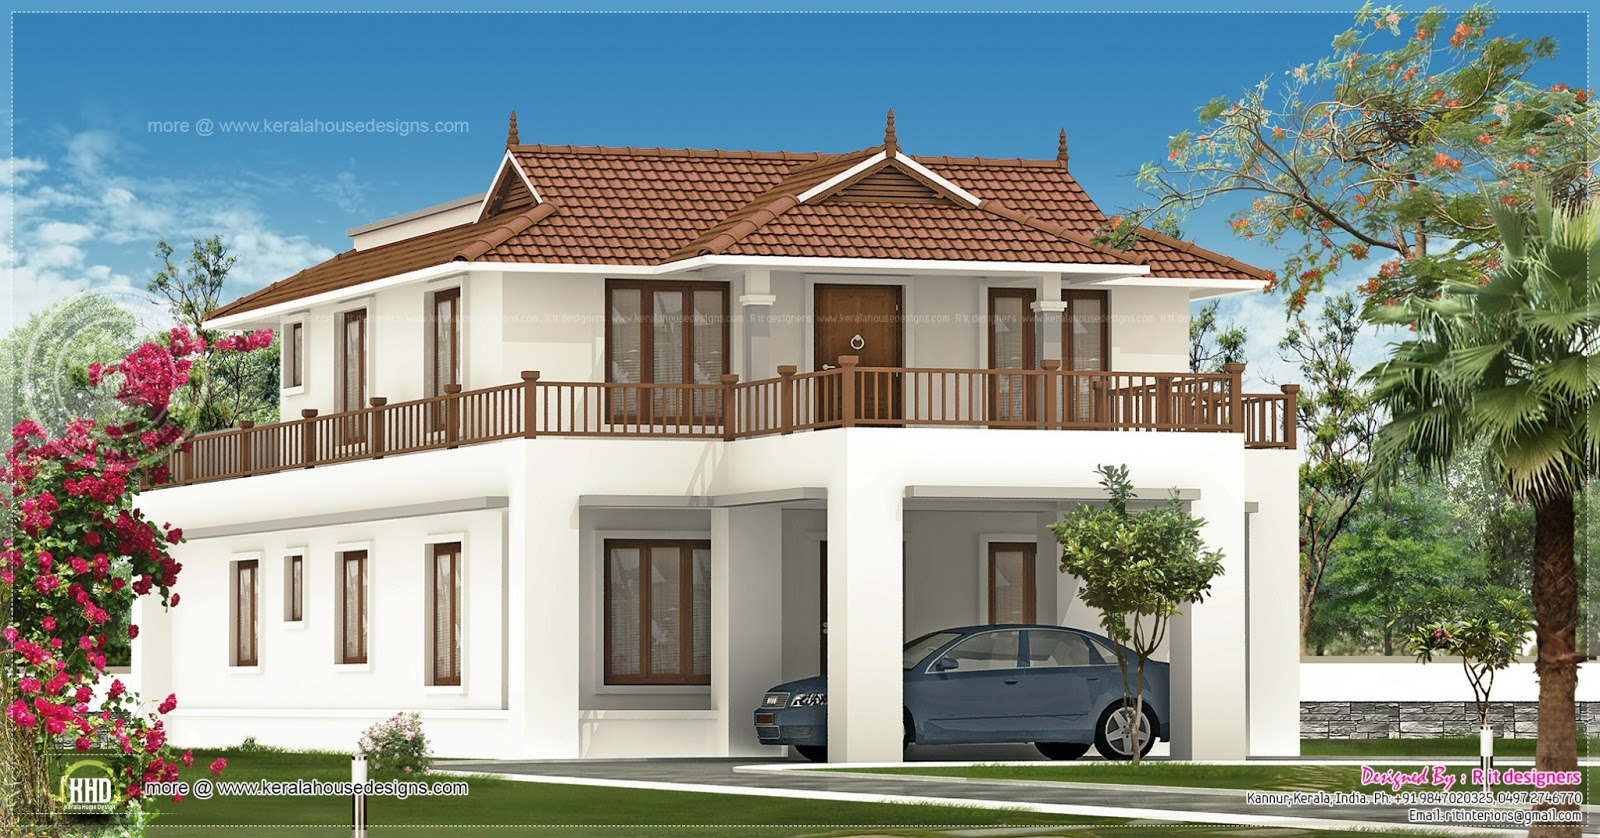 2820 square feet house exterior design home kerala plans for Design the exterior of your home